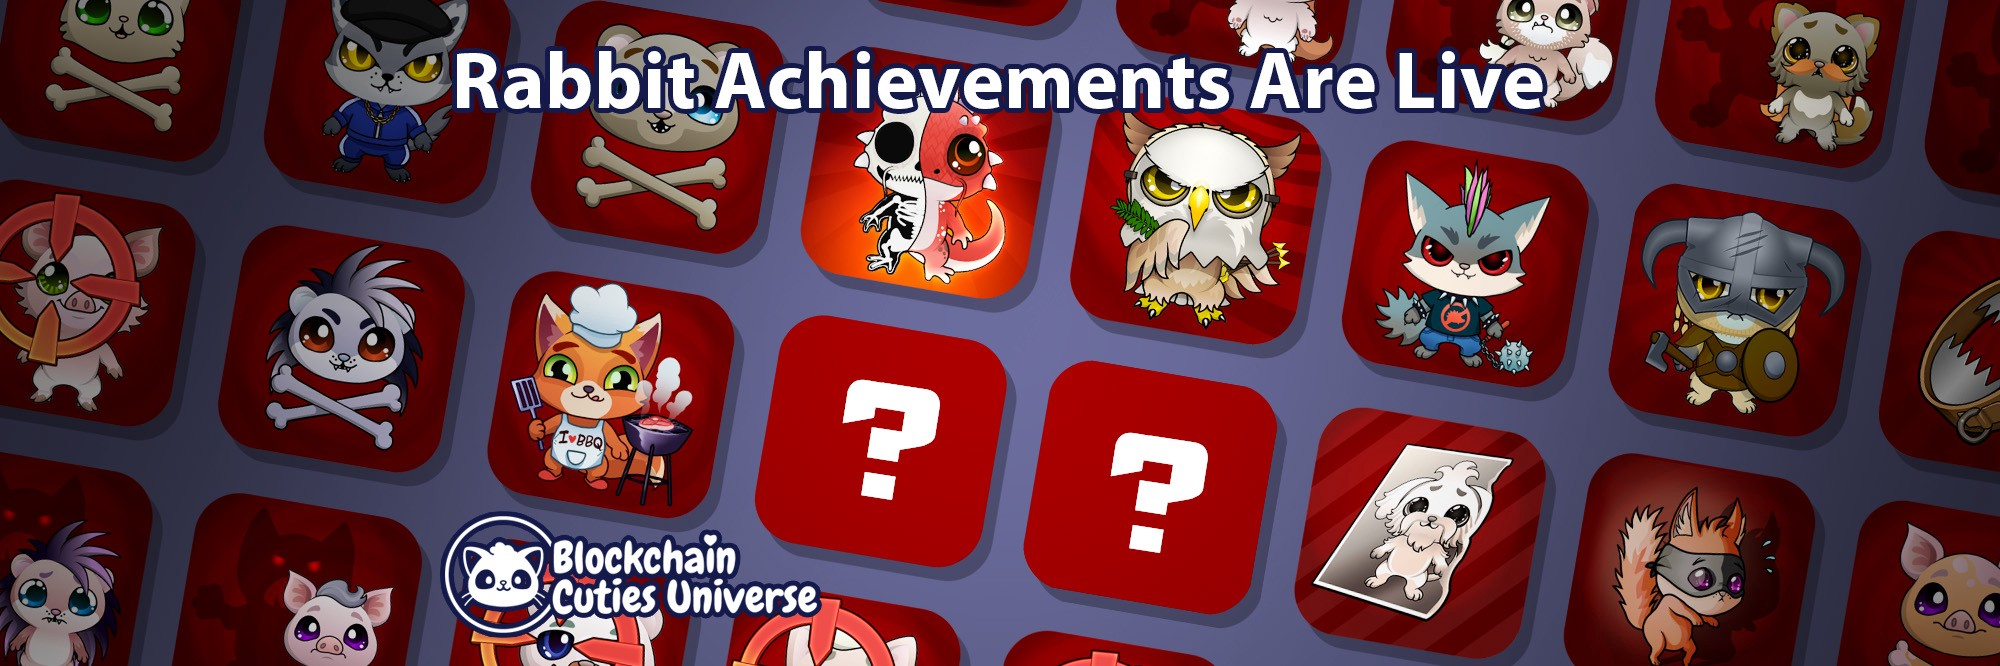 Time For a Rabbit Hunt: New Achievements Are Live